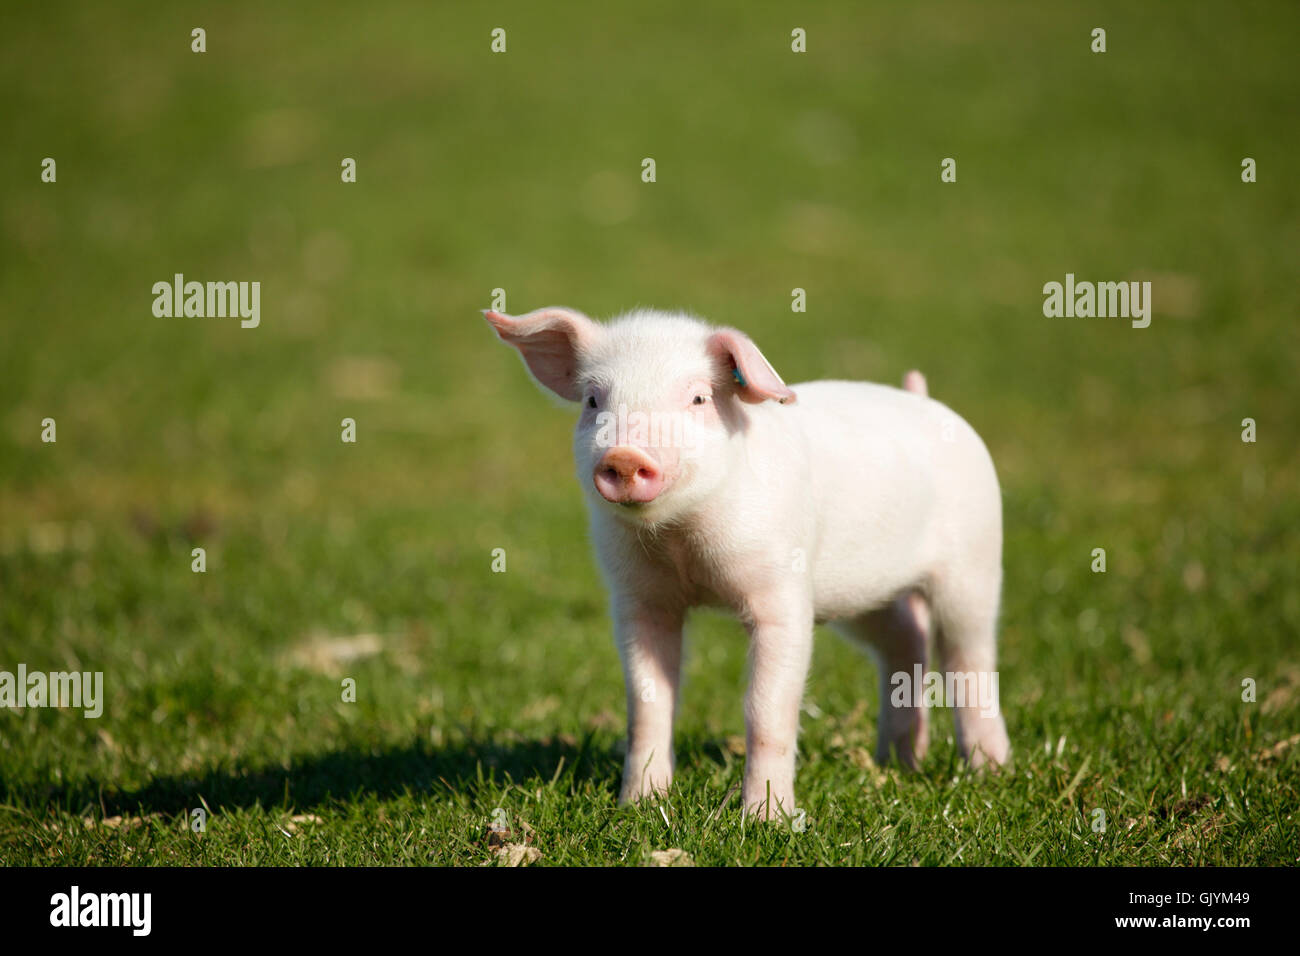 piglets on meadow - Stock Image